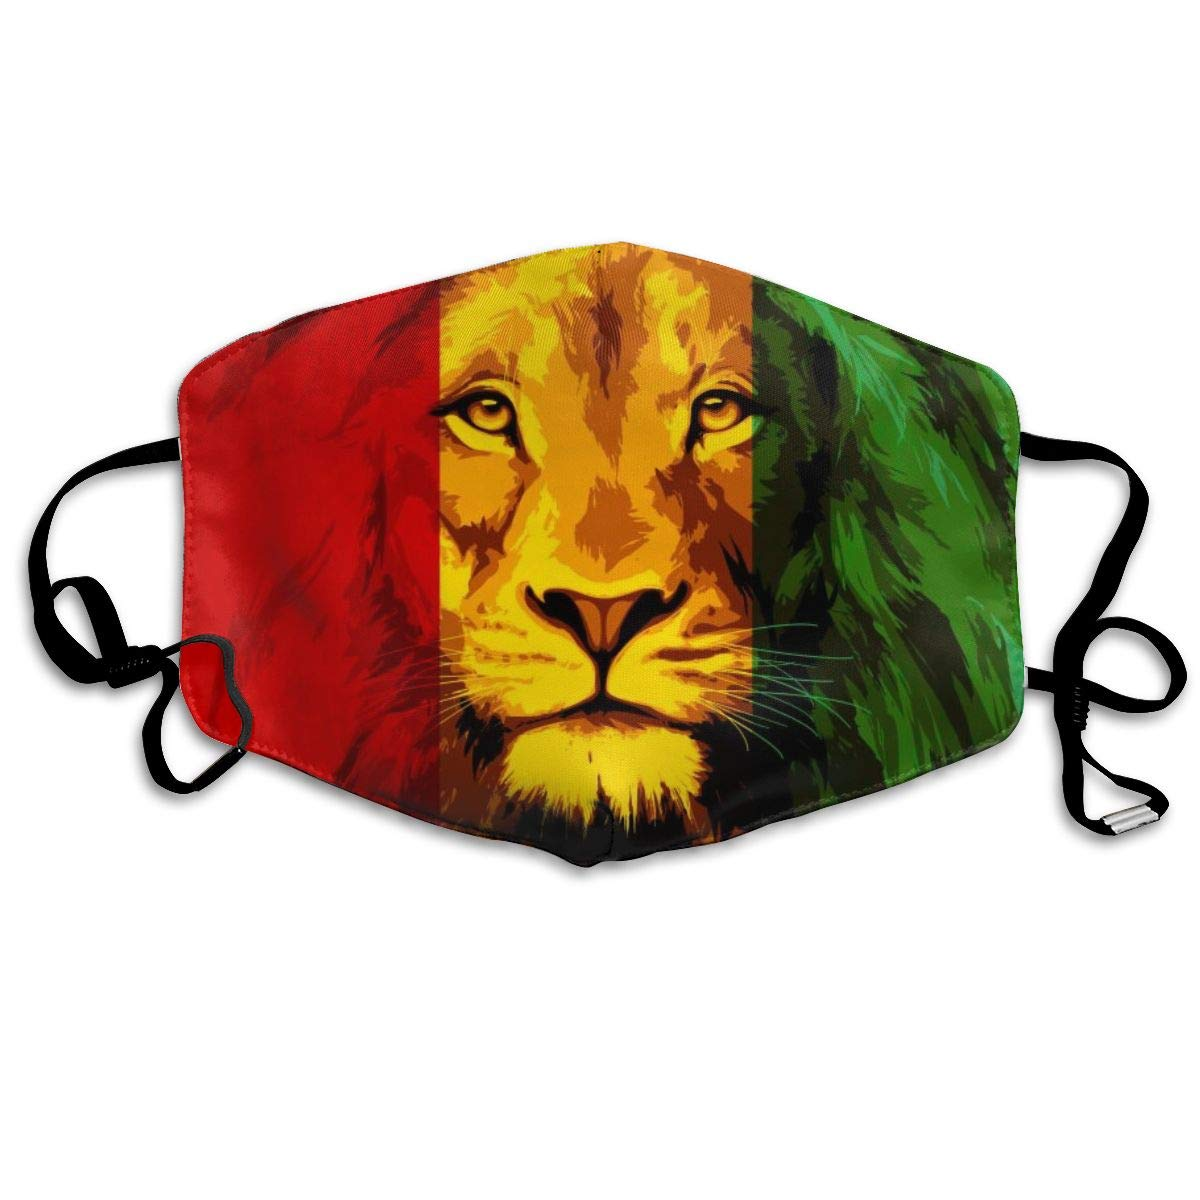 NiYoung Breathable Anti Dust Mouth Mask With Adjustable Earloop, Warm Windproof Reusable Washable Half Face Mask, Reggae Rasta